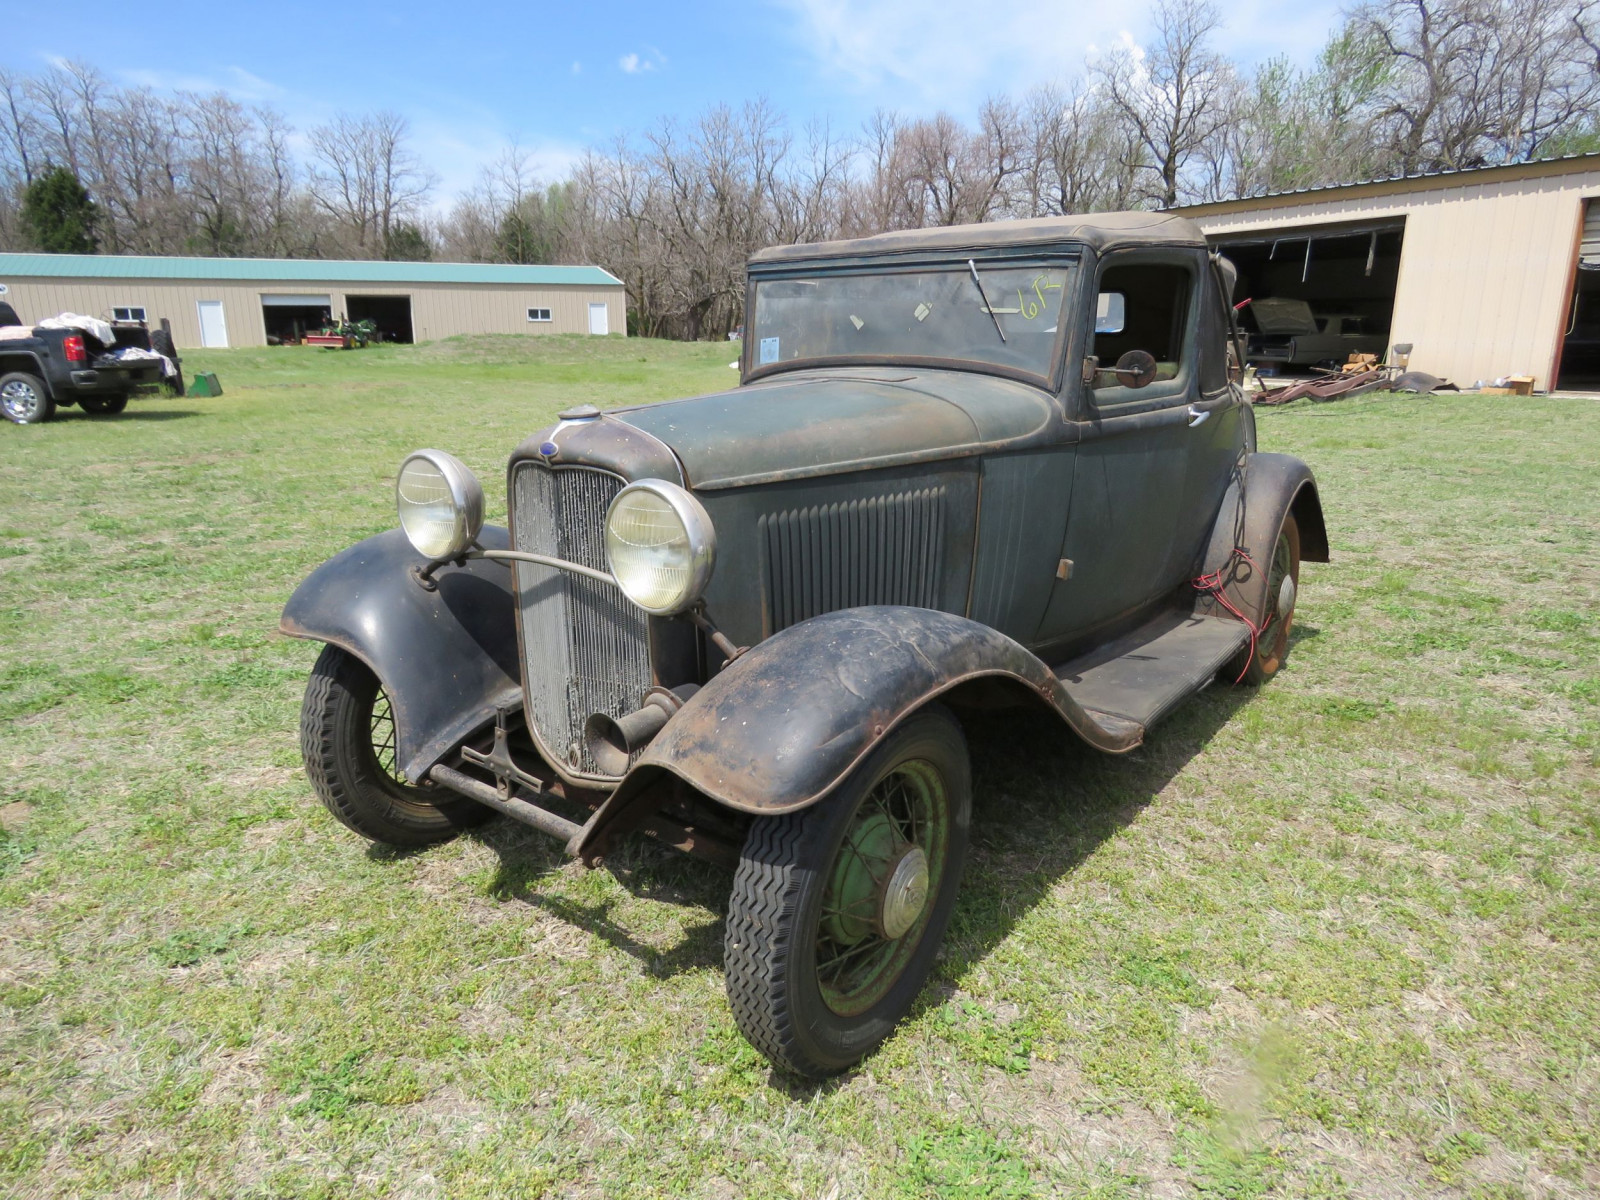 1932 FORD SPORT COUPE ORIGINAL PROJECT - Image 1